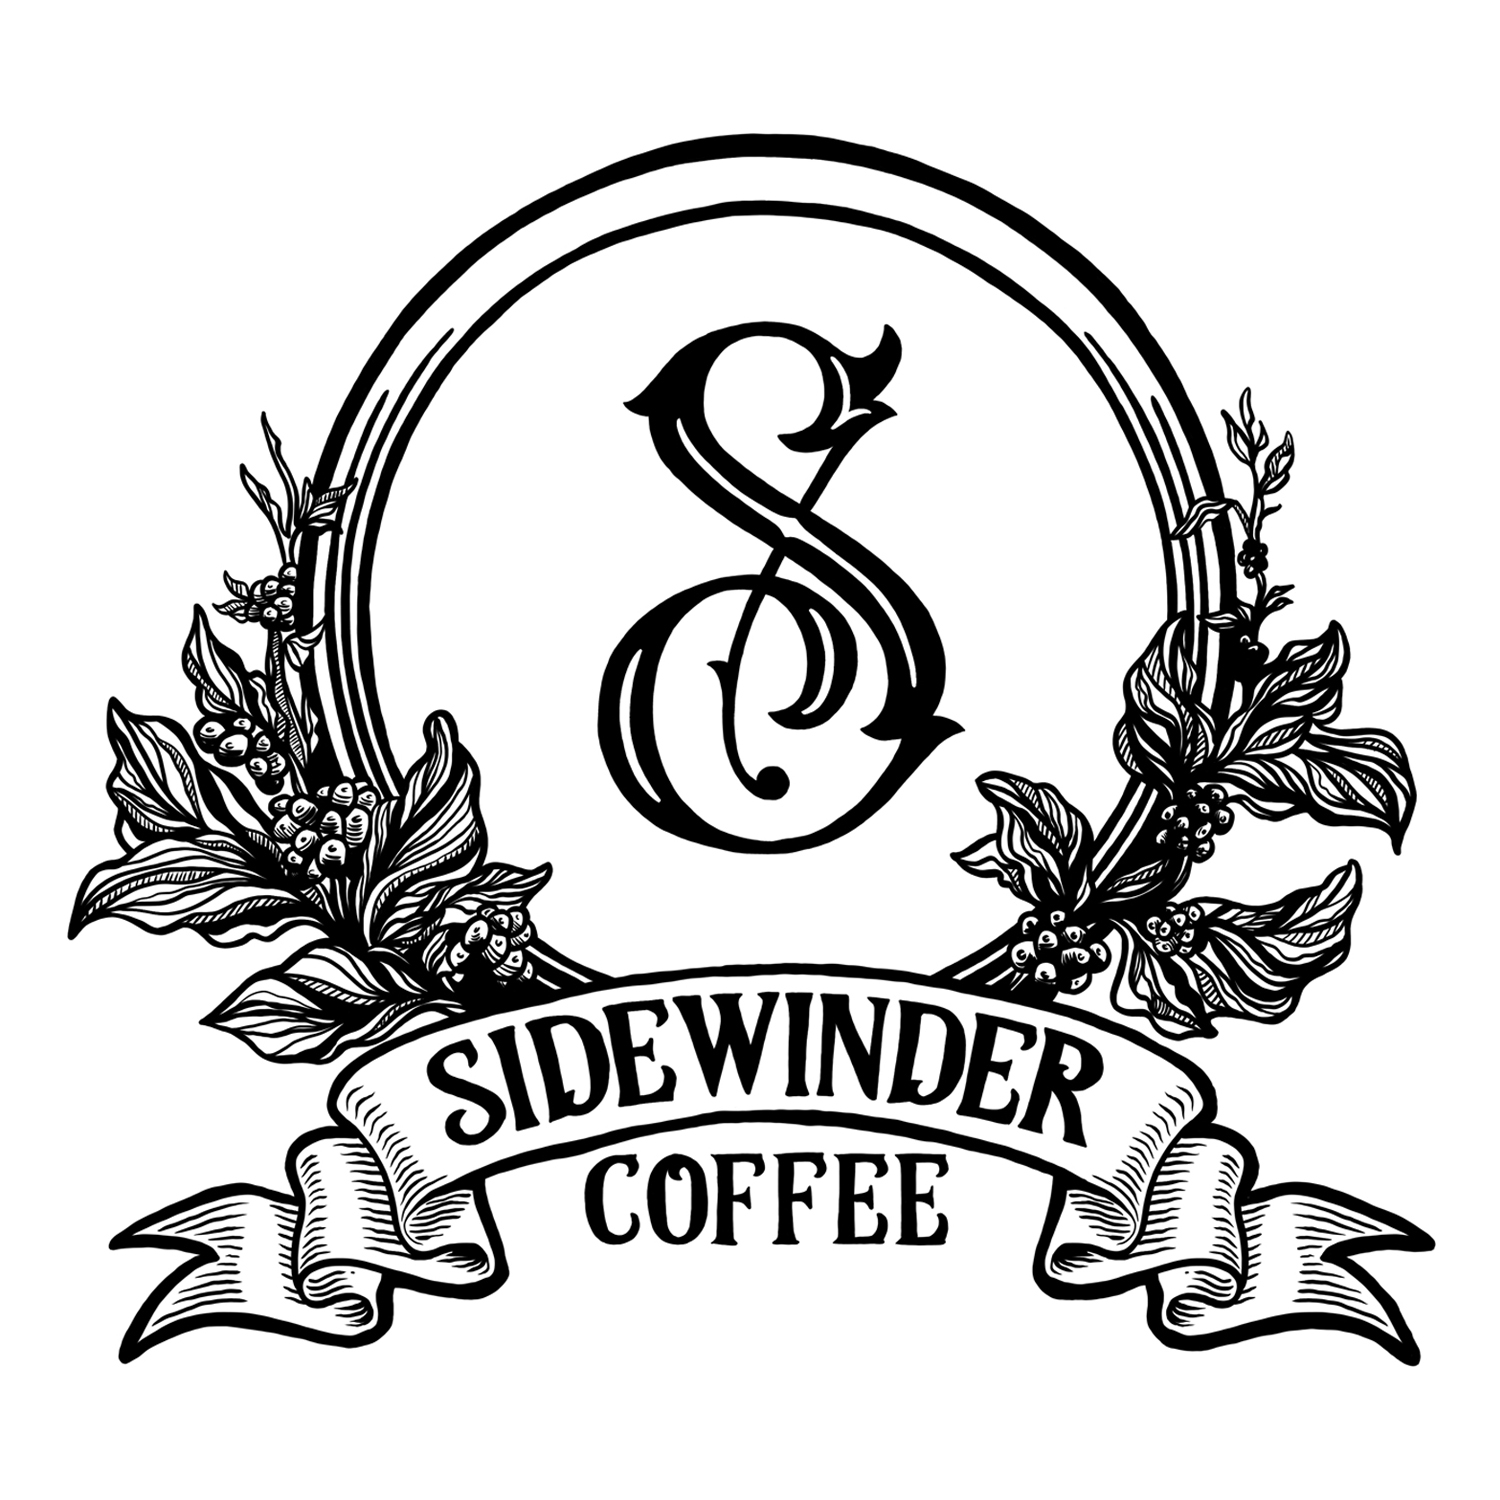 Sidewinder Coffee